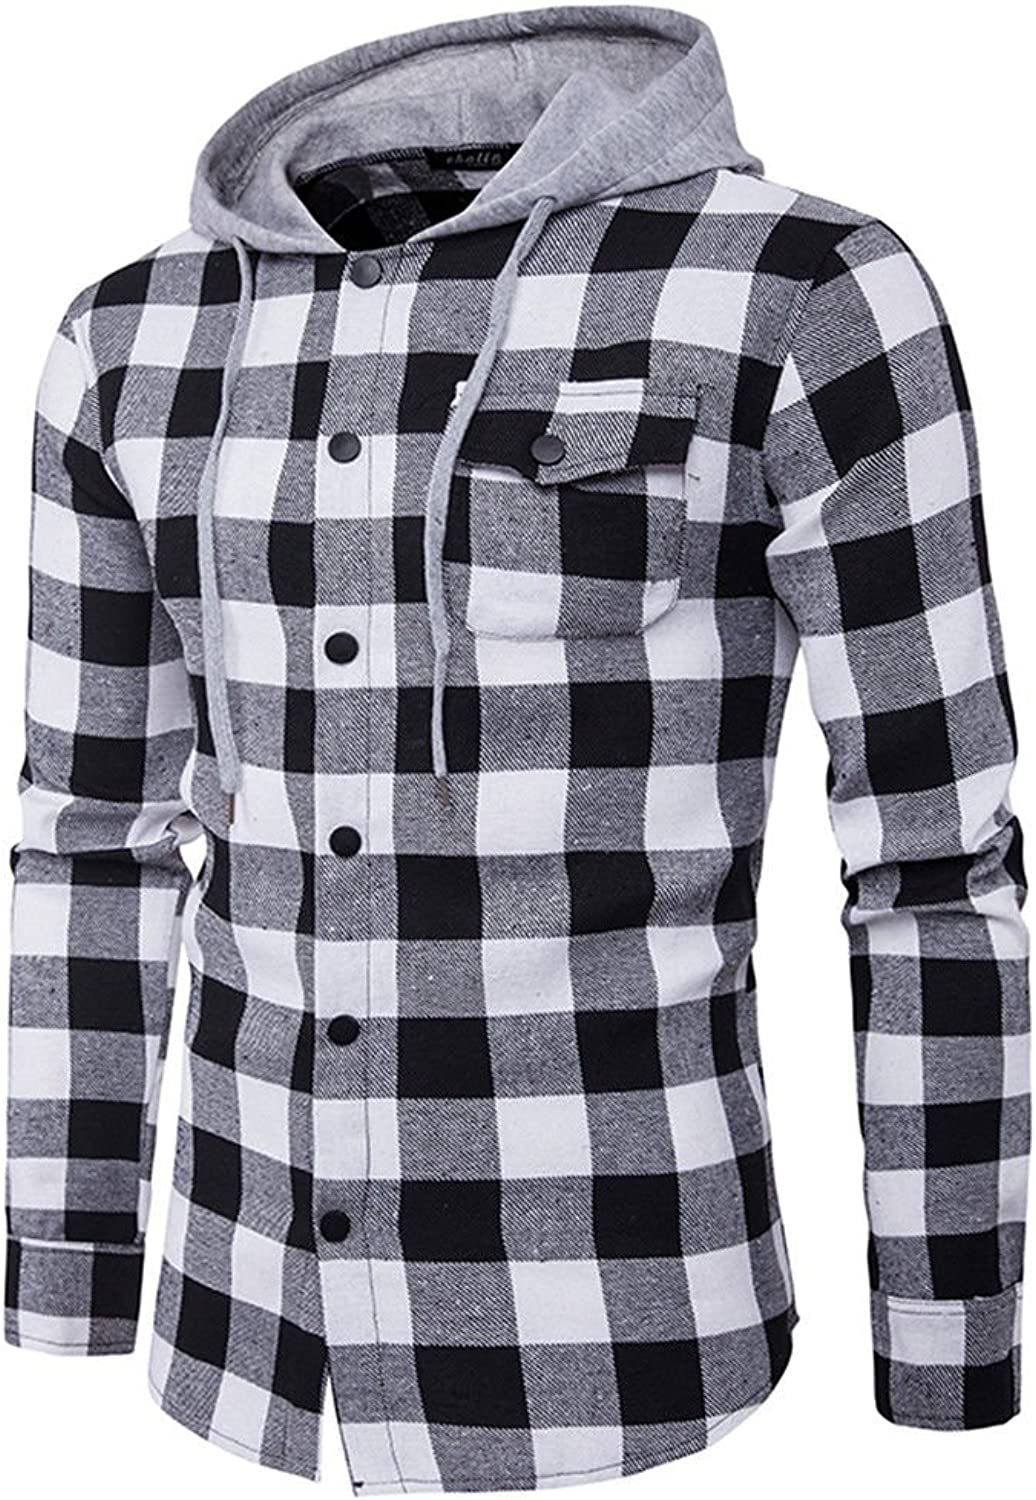 Wholesale Usopu Usopu Usopu Men's Casual Daily Plaid Hooded Long Sleeve Shirt  hot sale